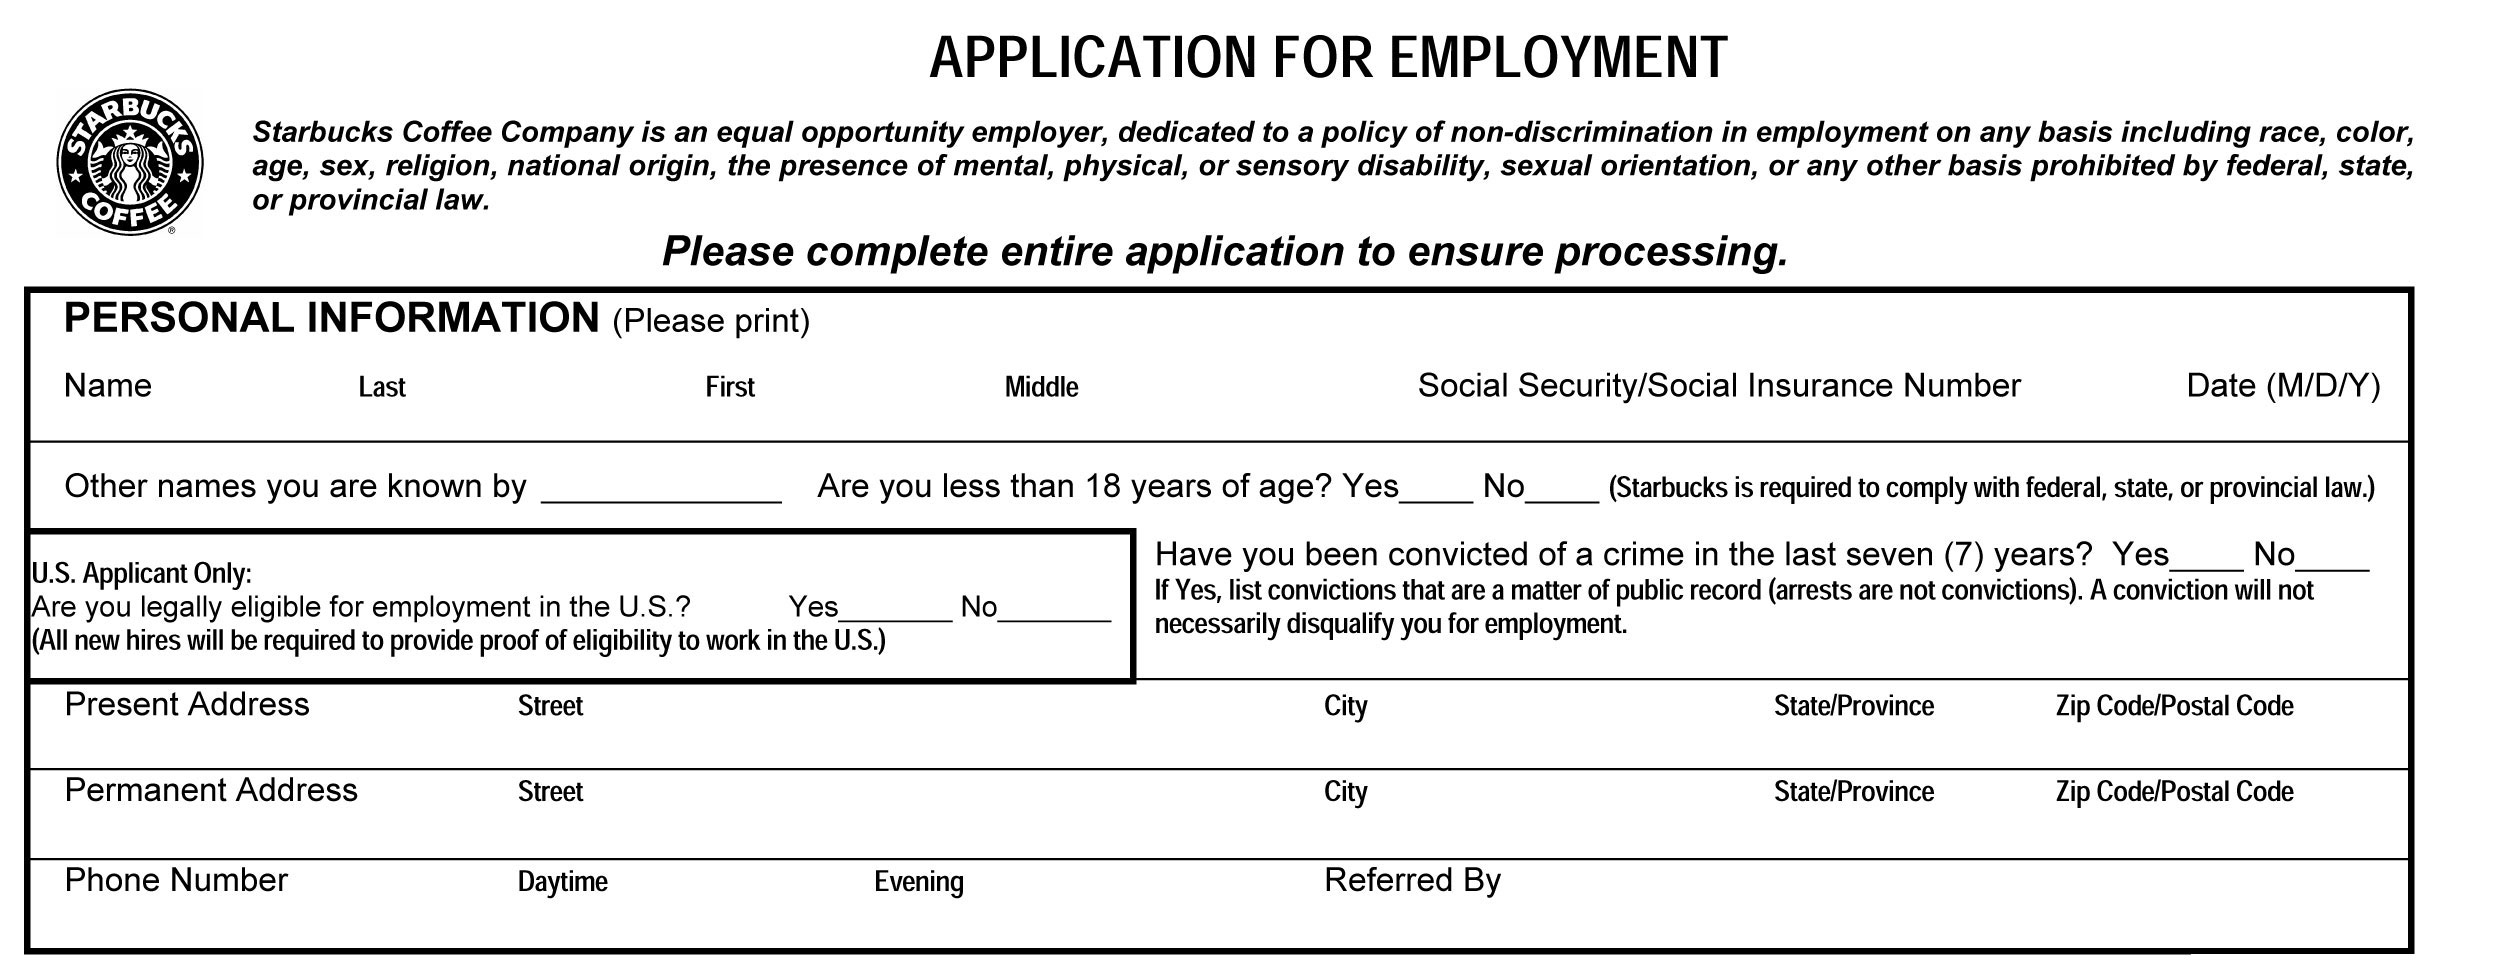 Starbucks Job Application Form Online Apply For Jobs At